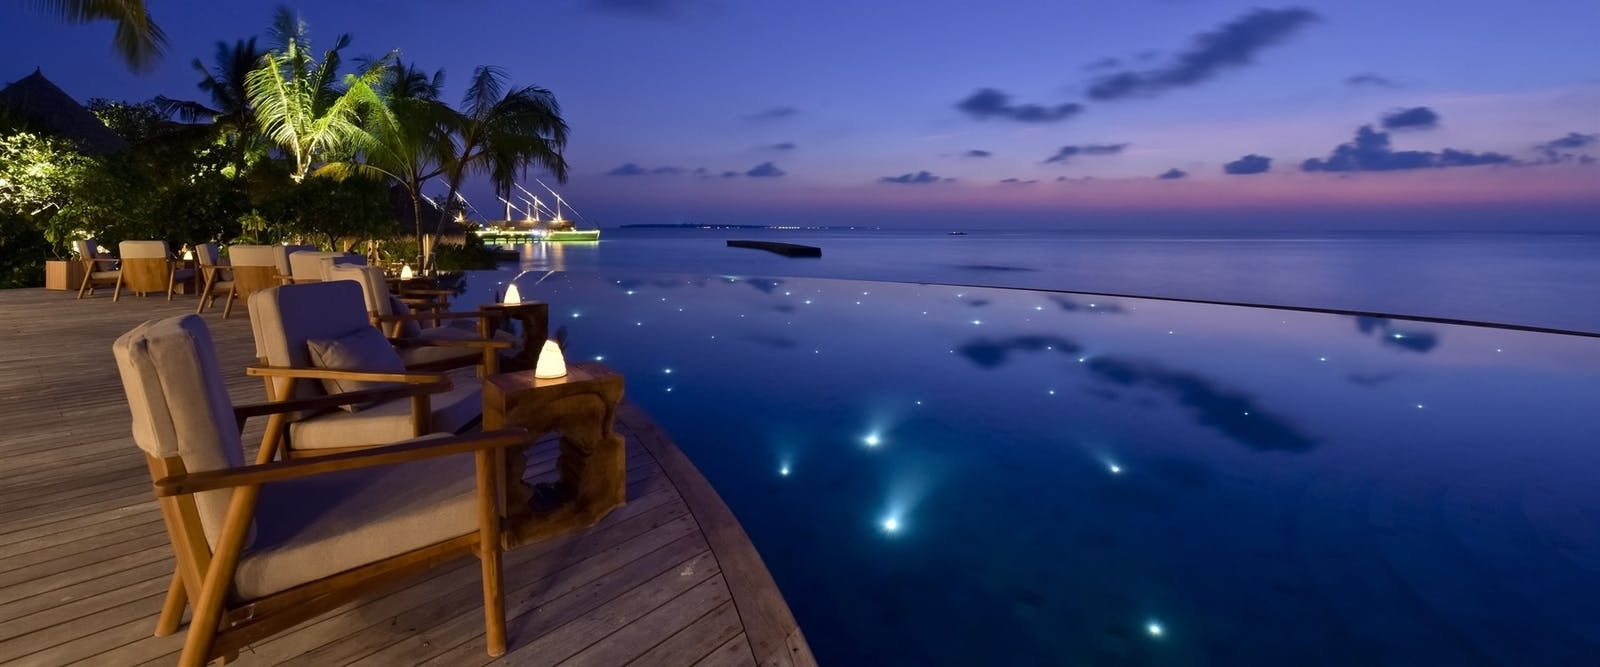 Compass Pool Bar in the evening at Milaidhoo, Maldives, Indian Ocean